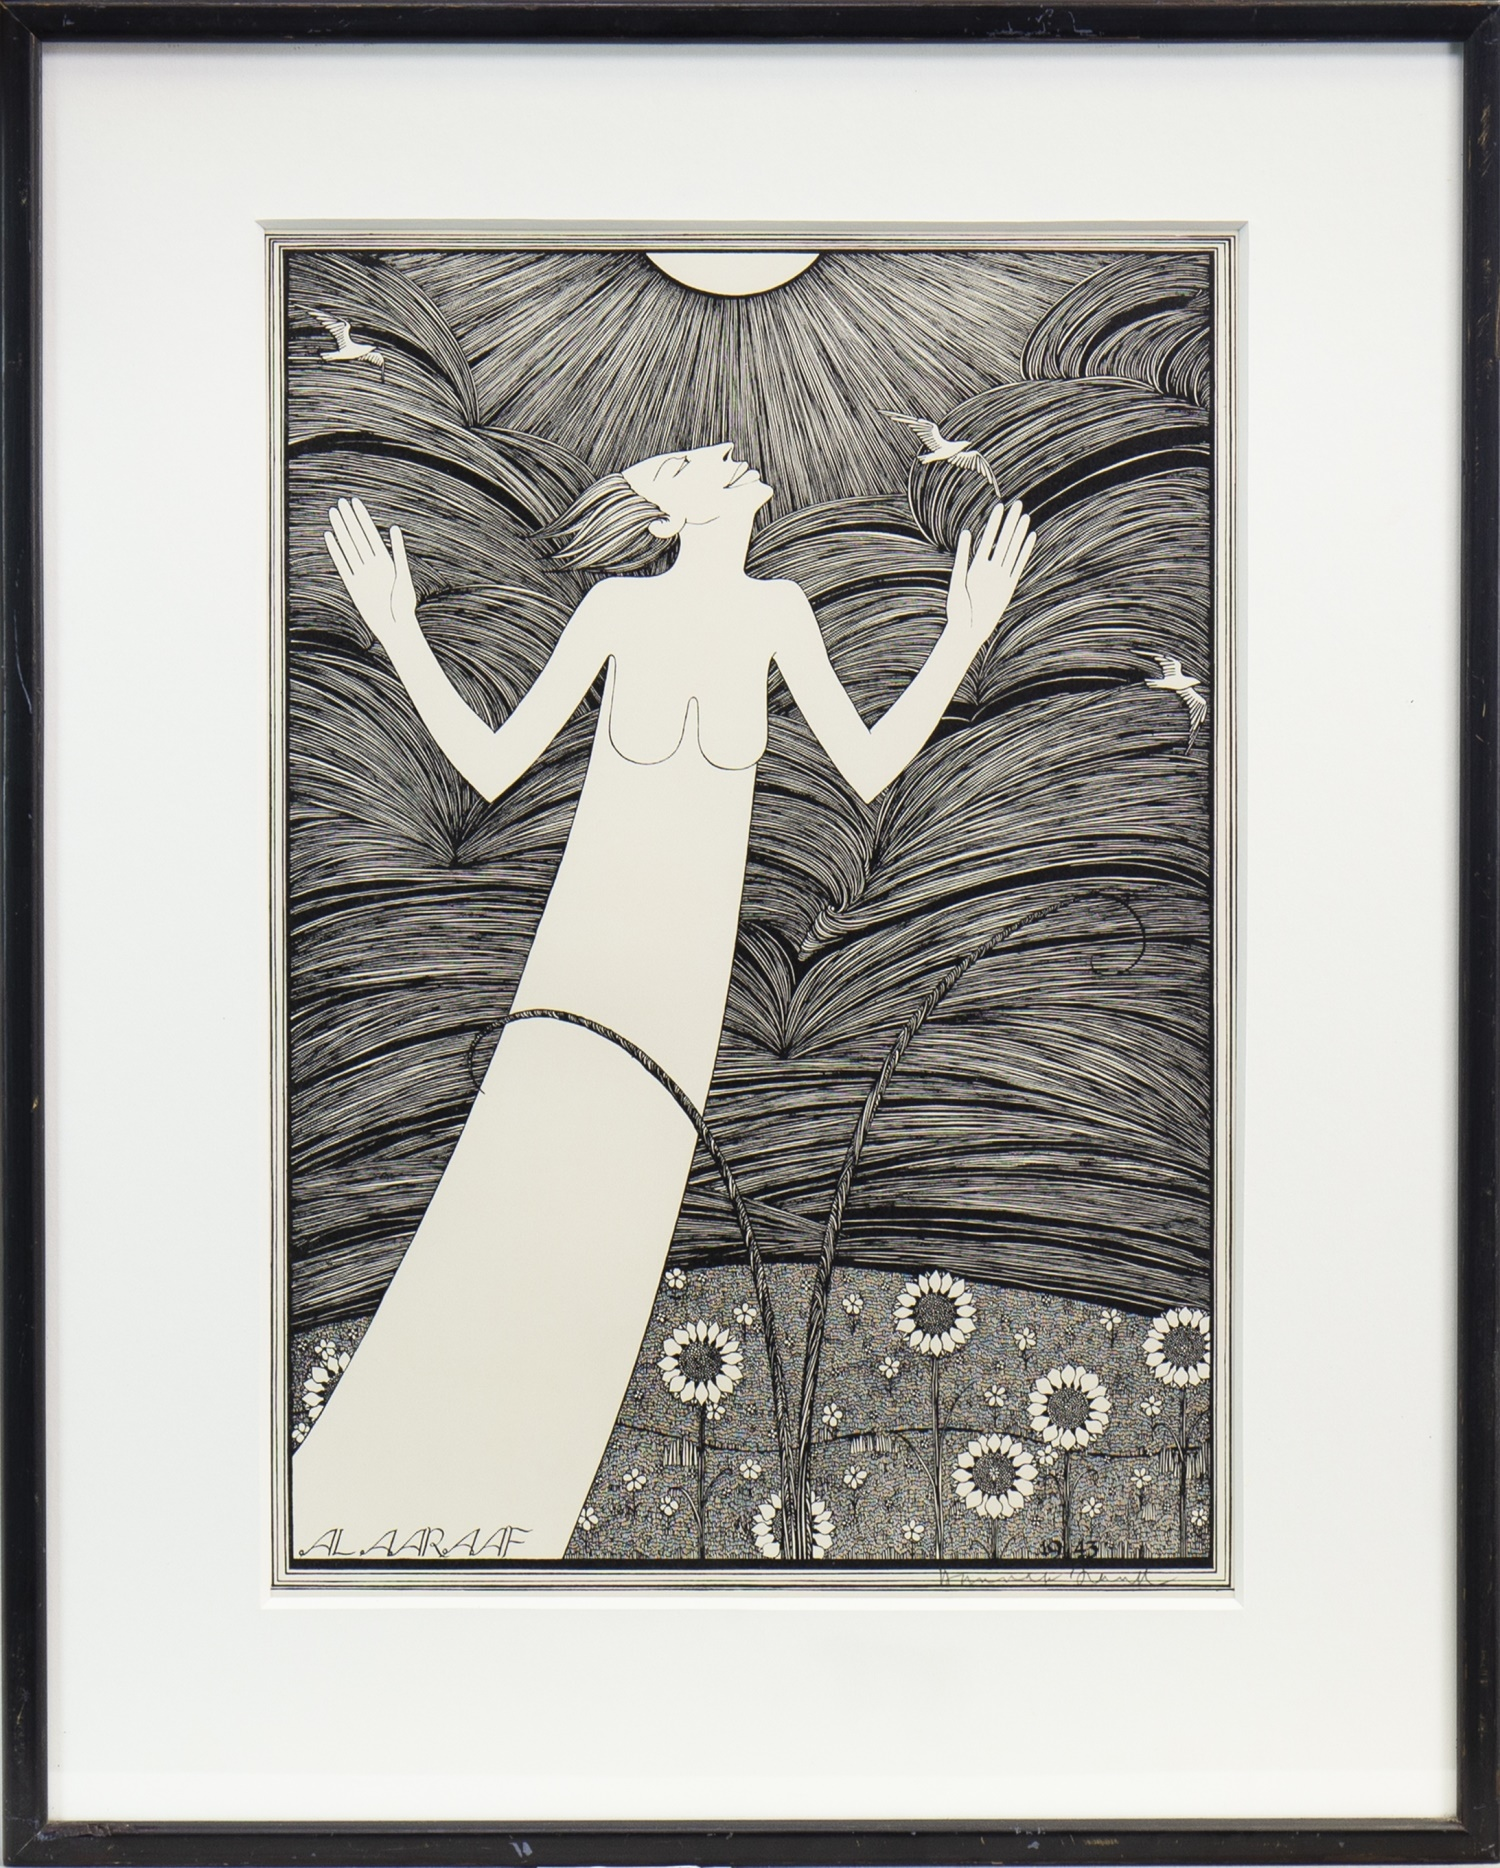 Lot 543 - SUN, A SIGNED LITHOGRAPH BY HANNAH FRANK